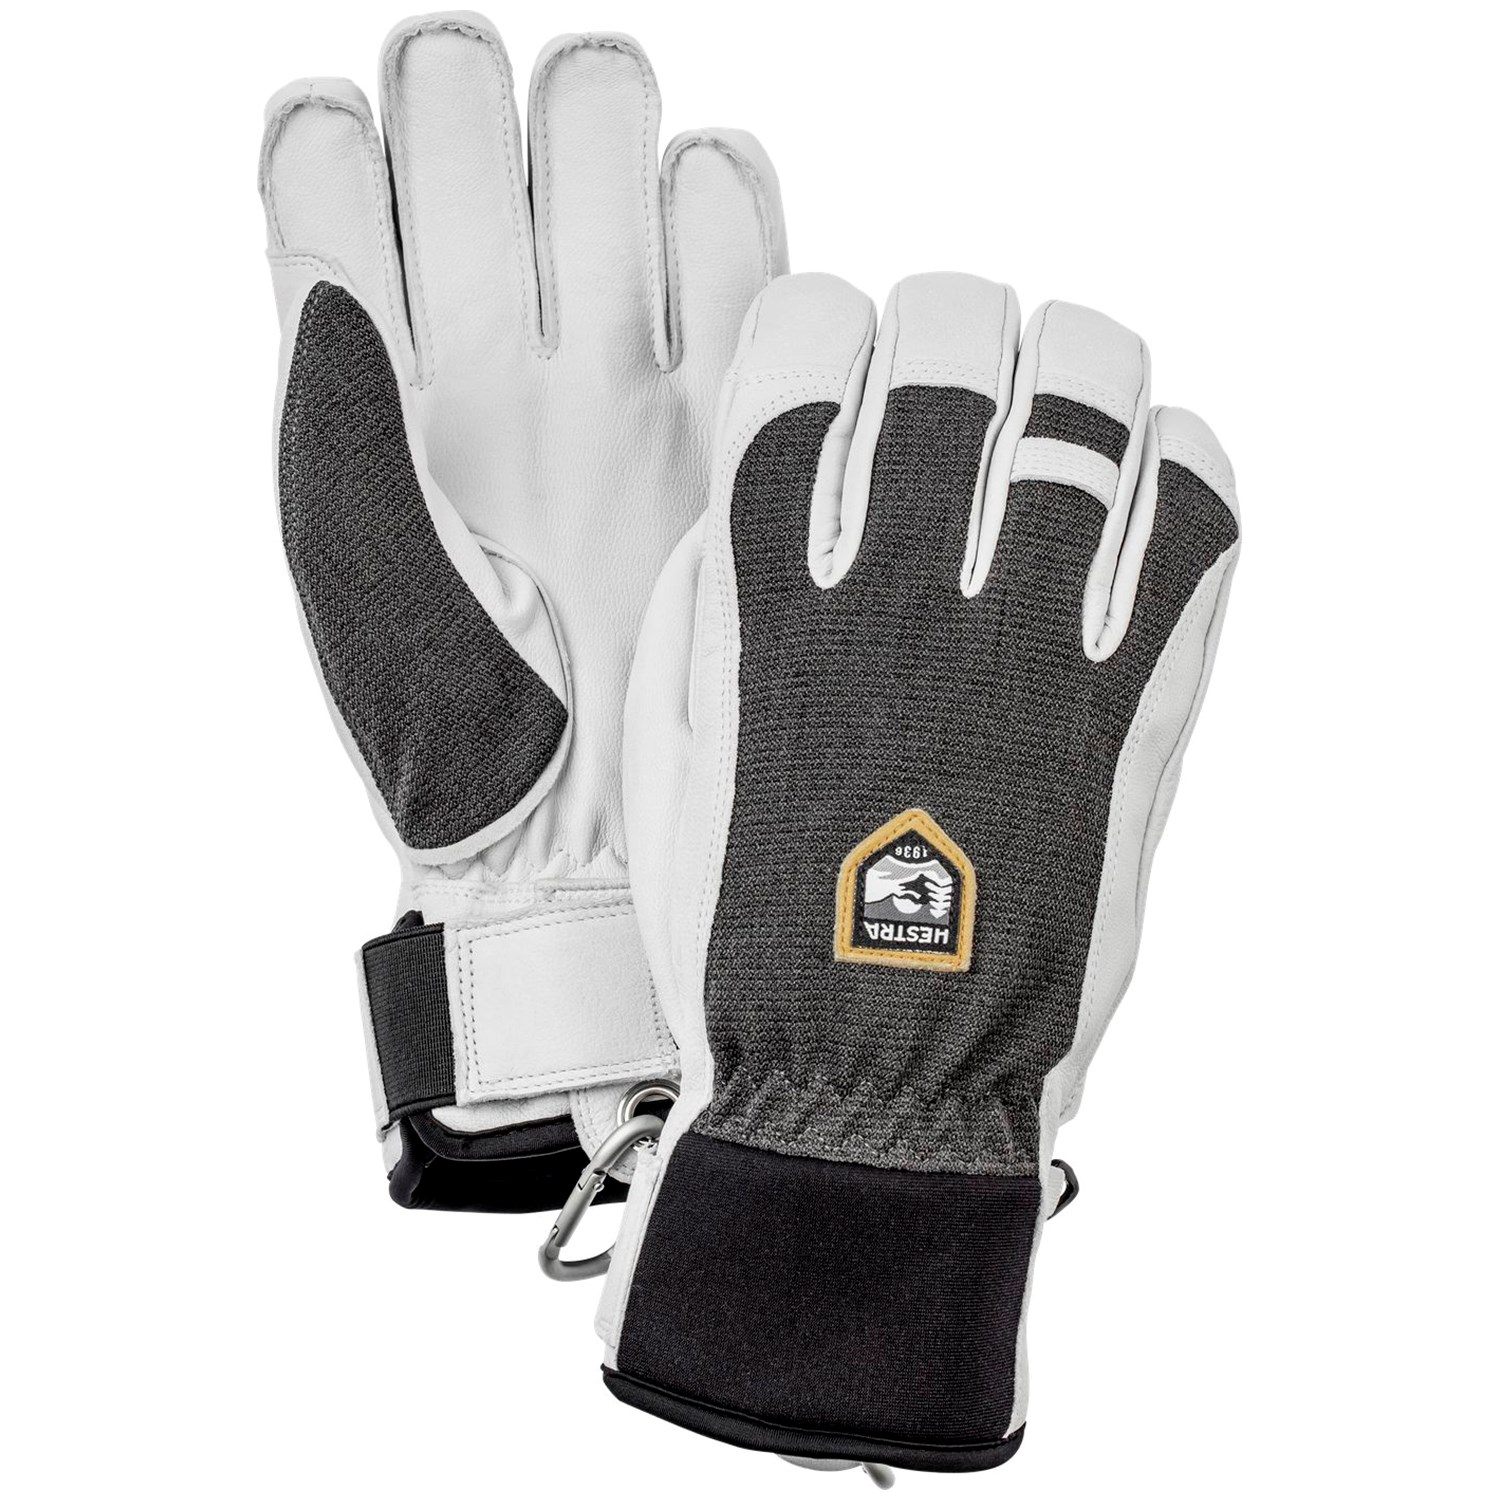 Hestra mens gloves - Hestra Mens Gloves 11